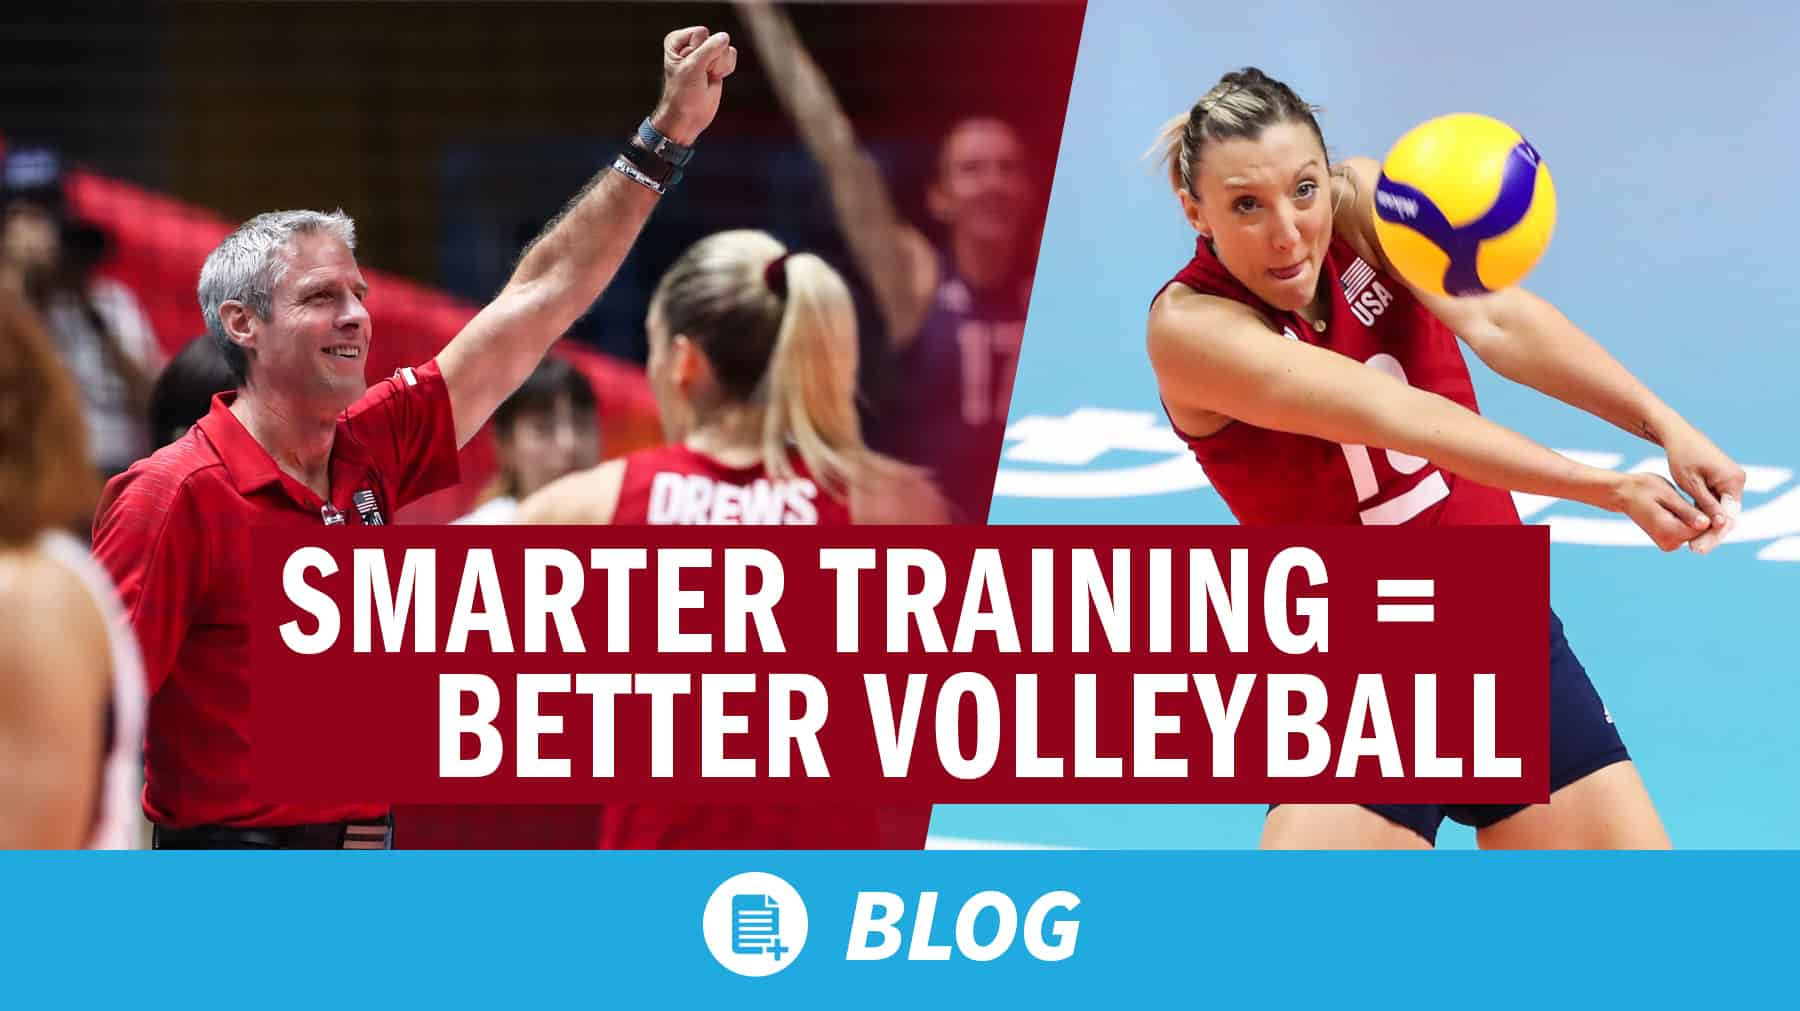 Smarter training = Better volleyball